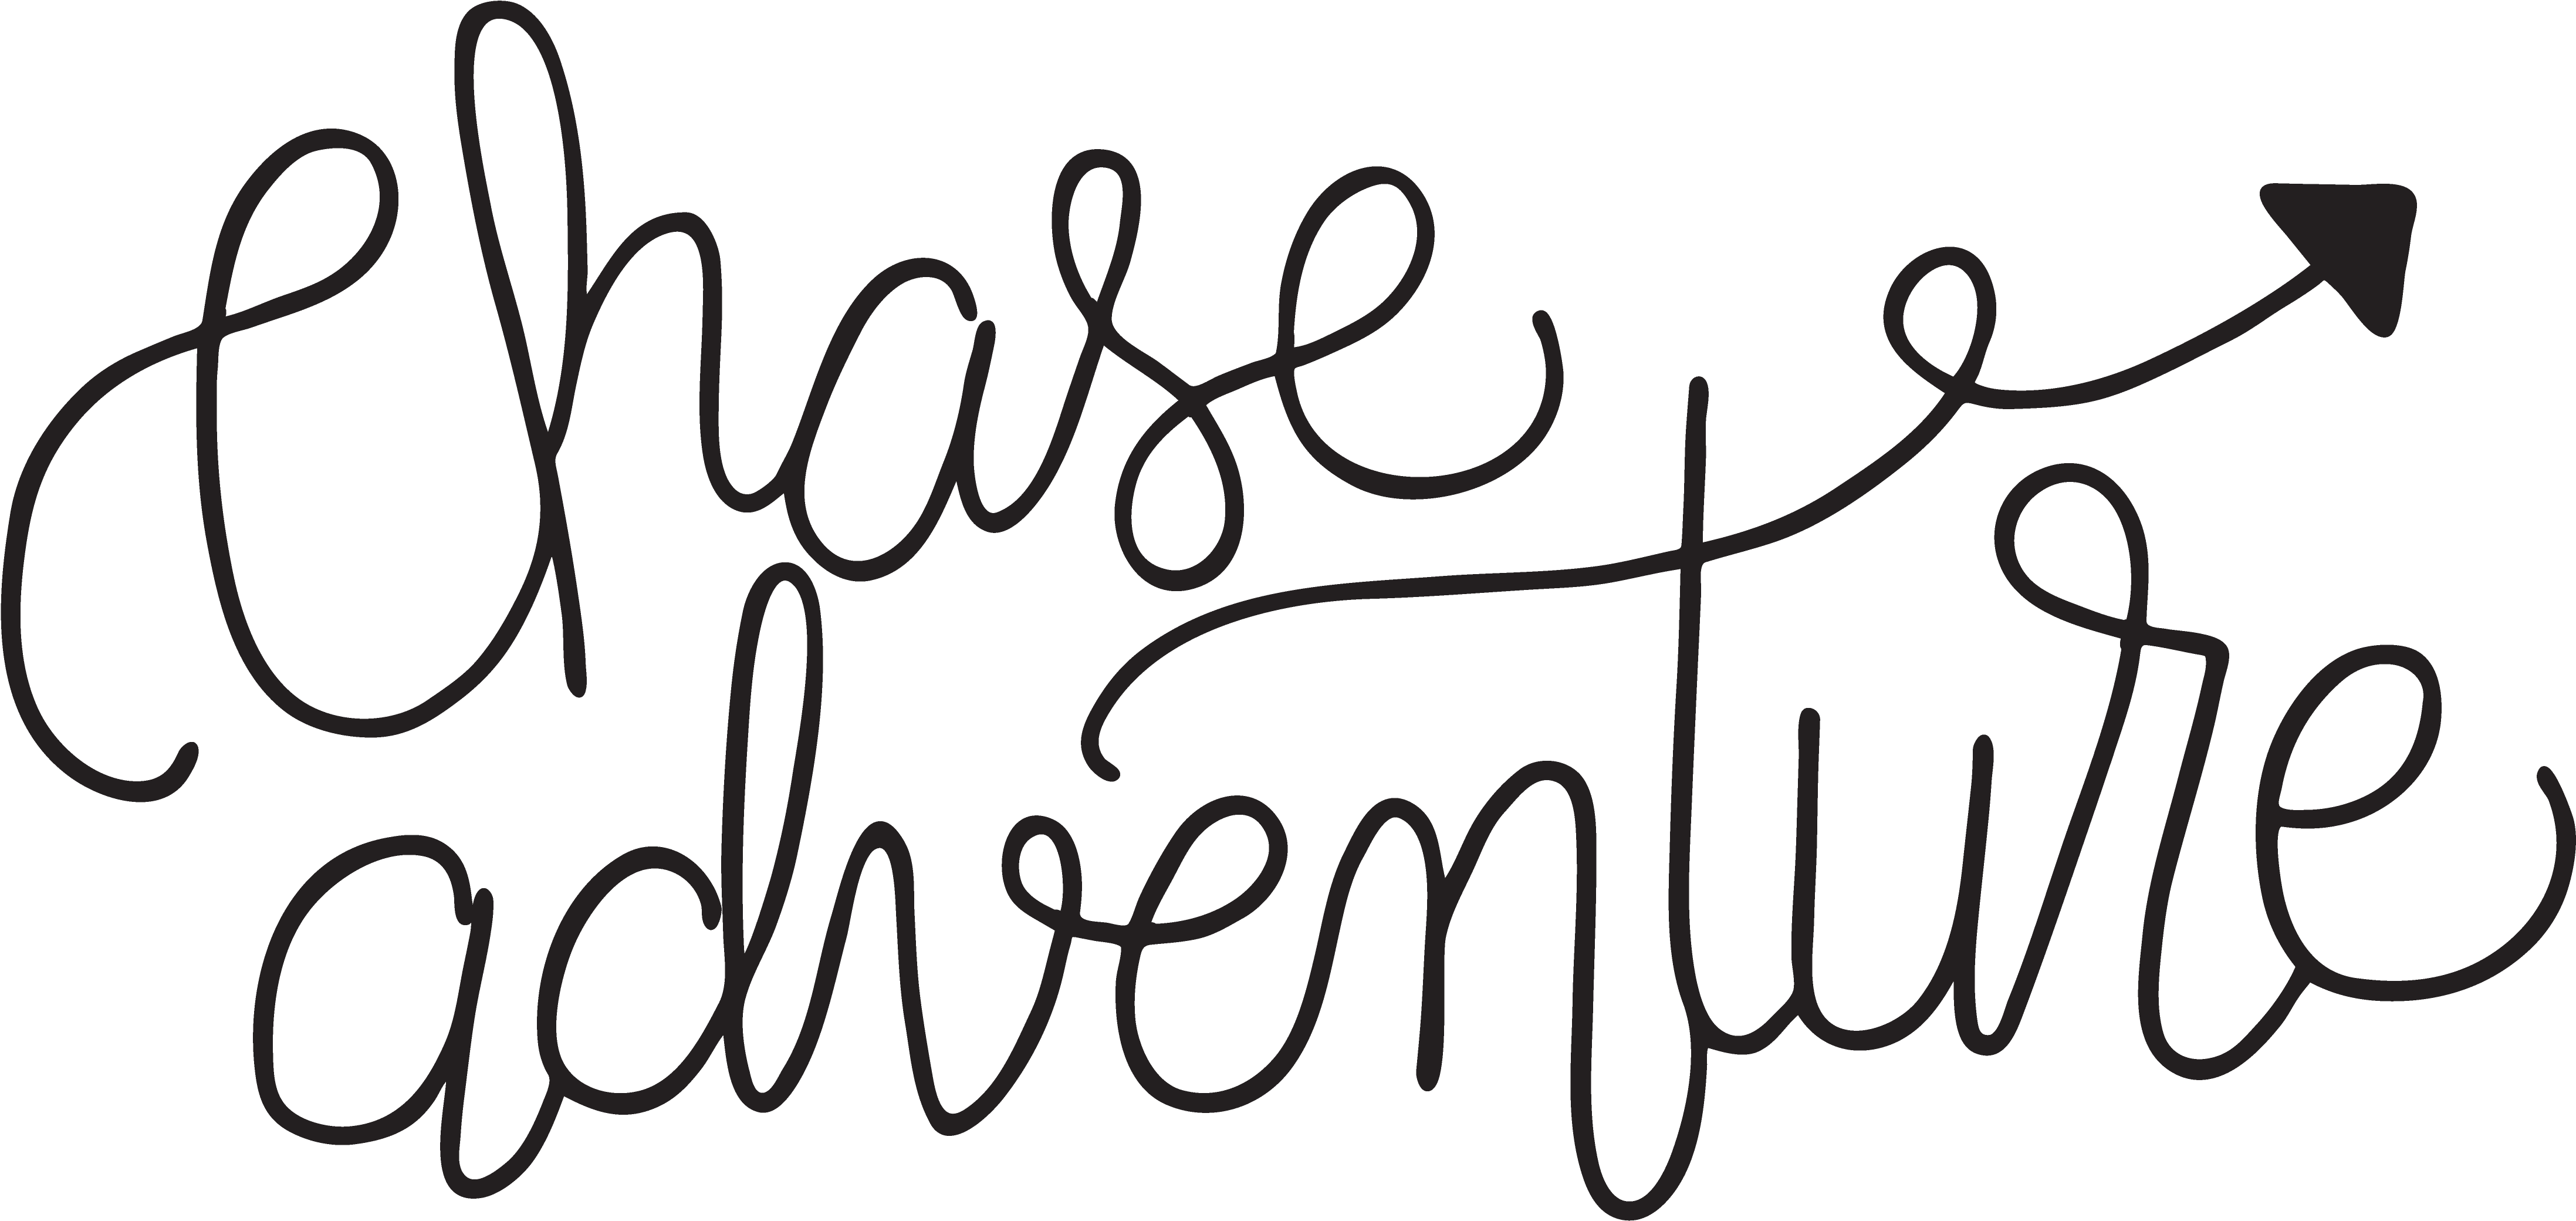 Banner Free Chase Hand Lettered Free.